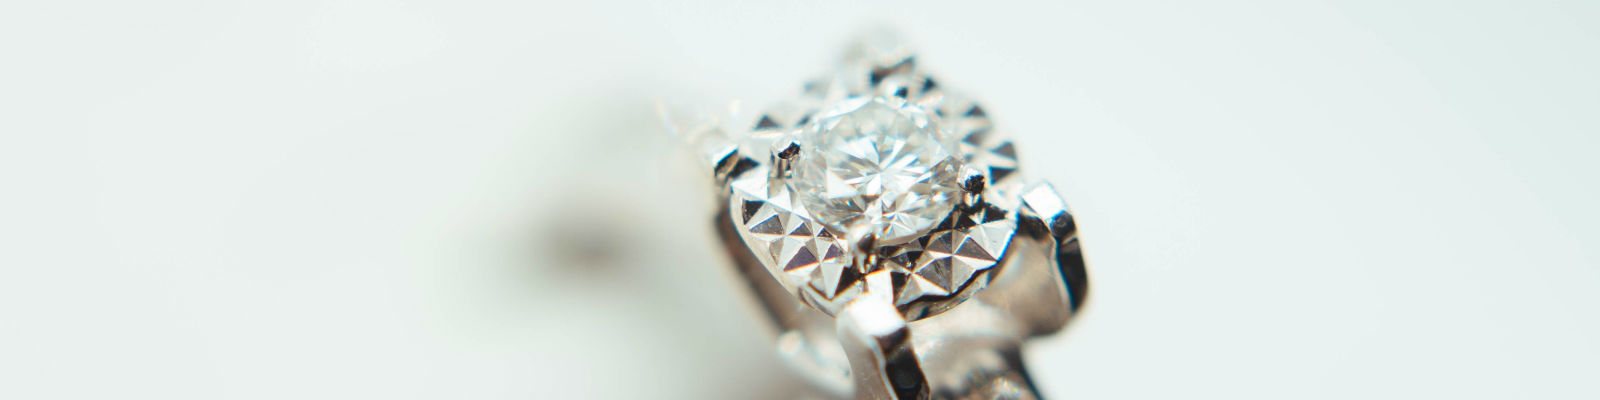 Conflict-Free Diamonds at Barons Jewelers Dublin